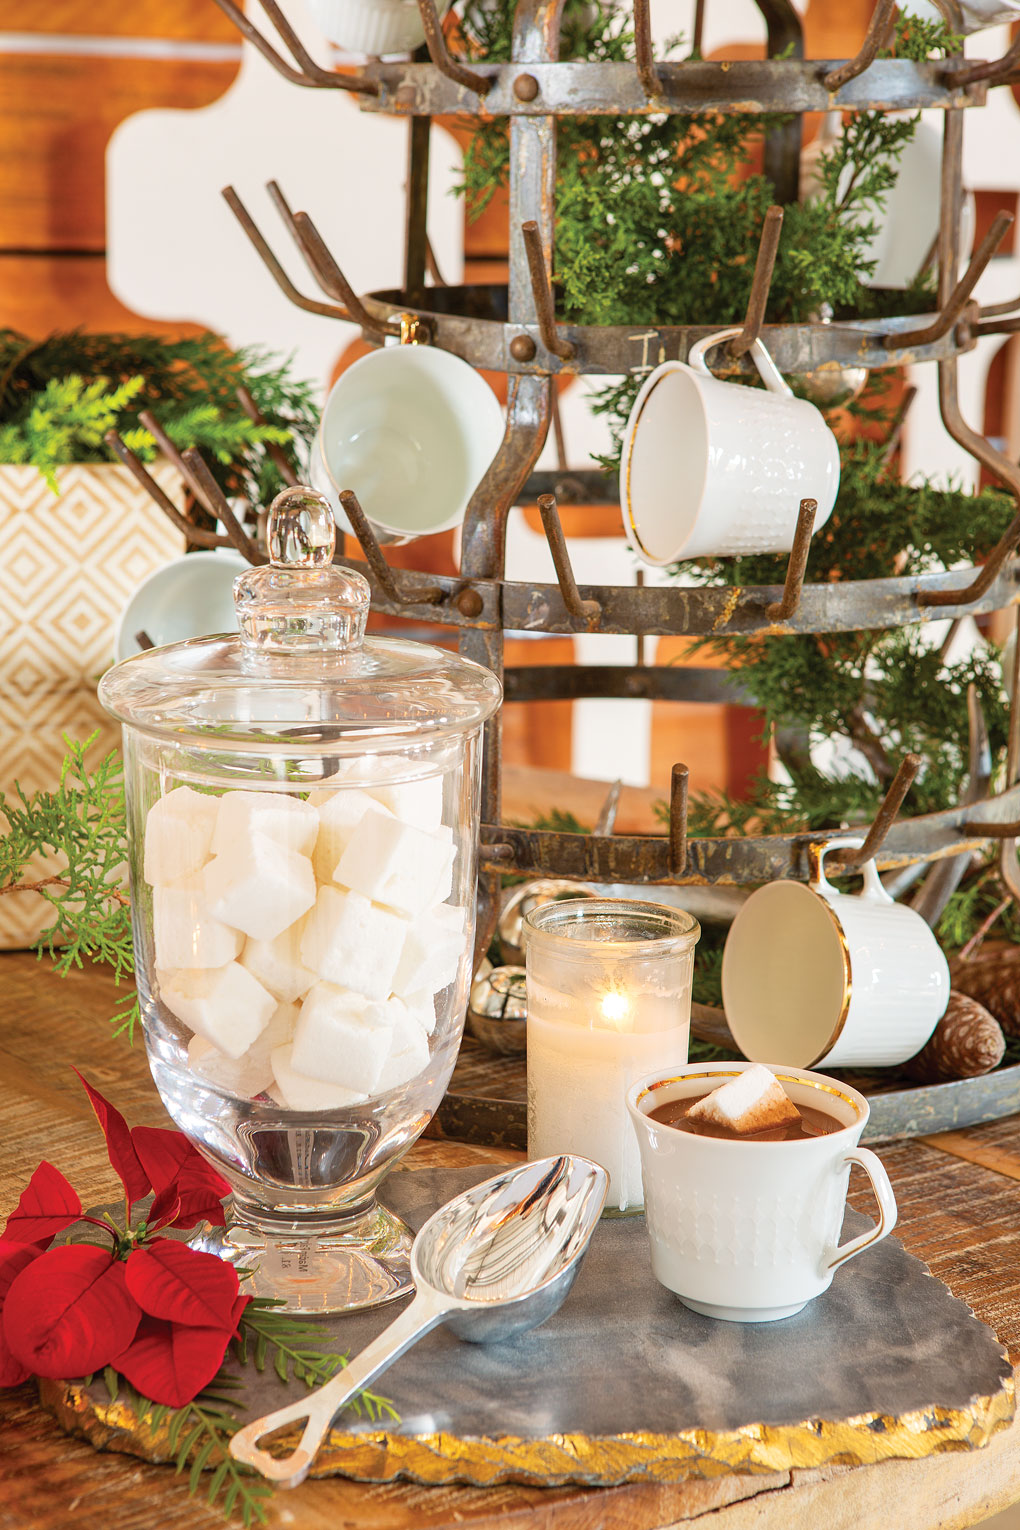 Glass apothecary jar filled with large marshmallows cubes next to a large metal mug holding tree and a cup of cocoa.